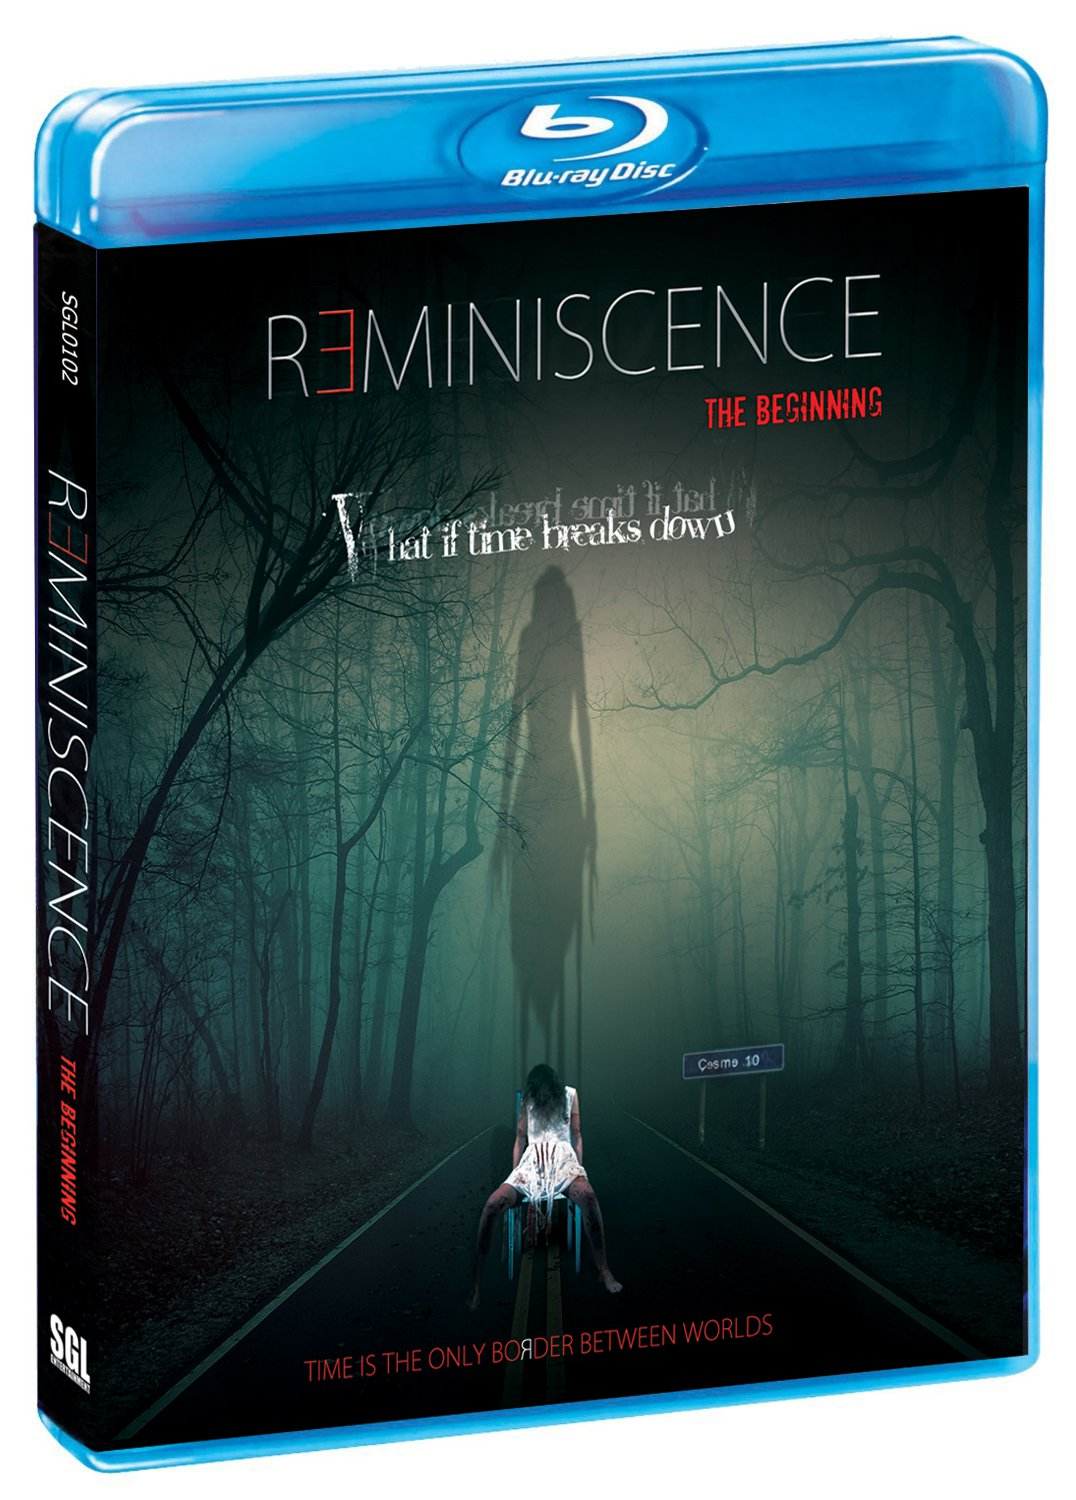 Reminiscence: The Beginning [Blu-ray]